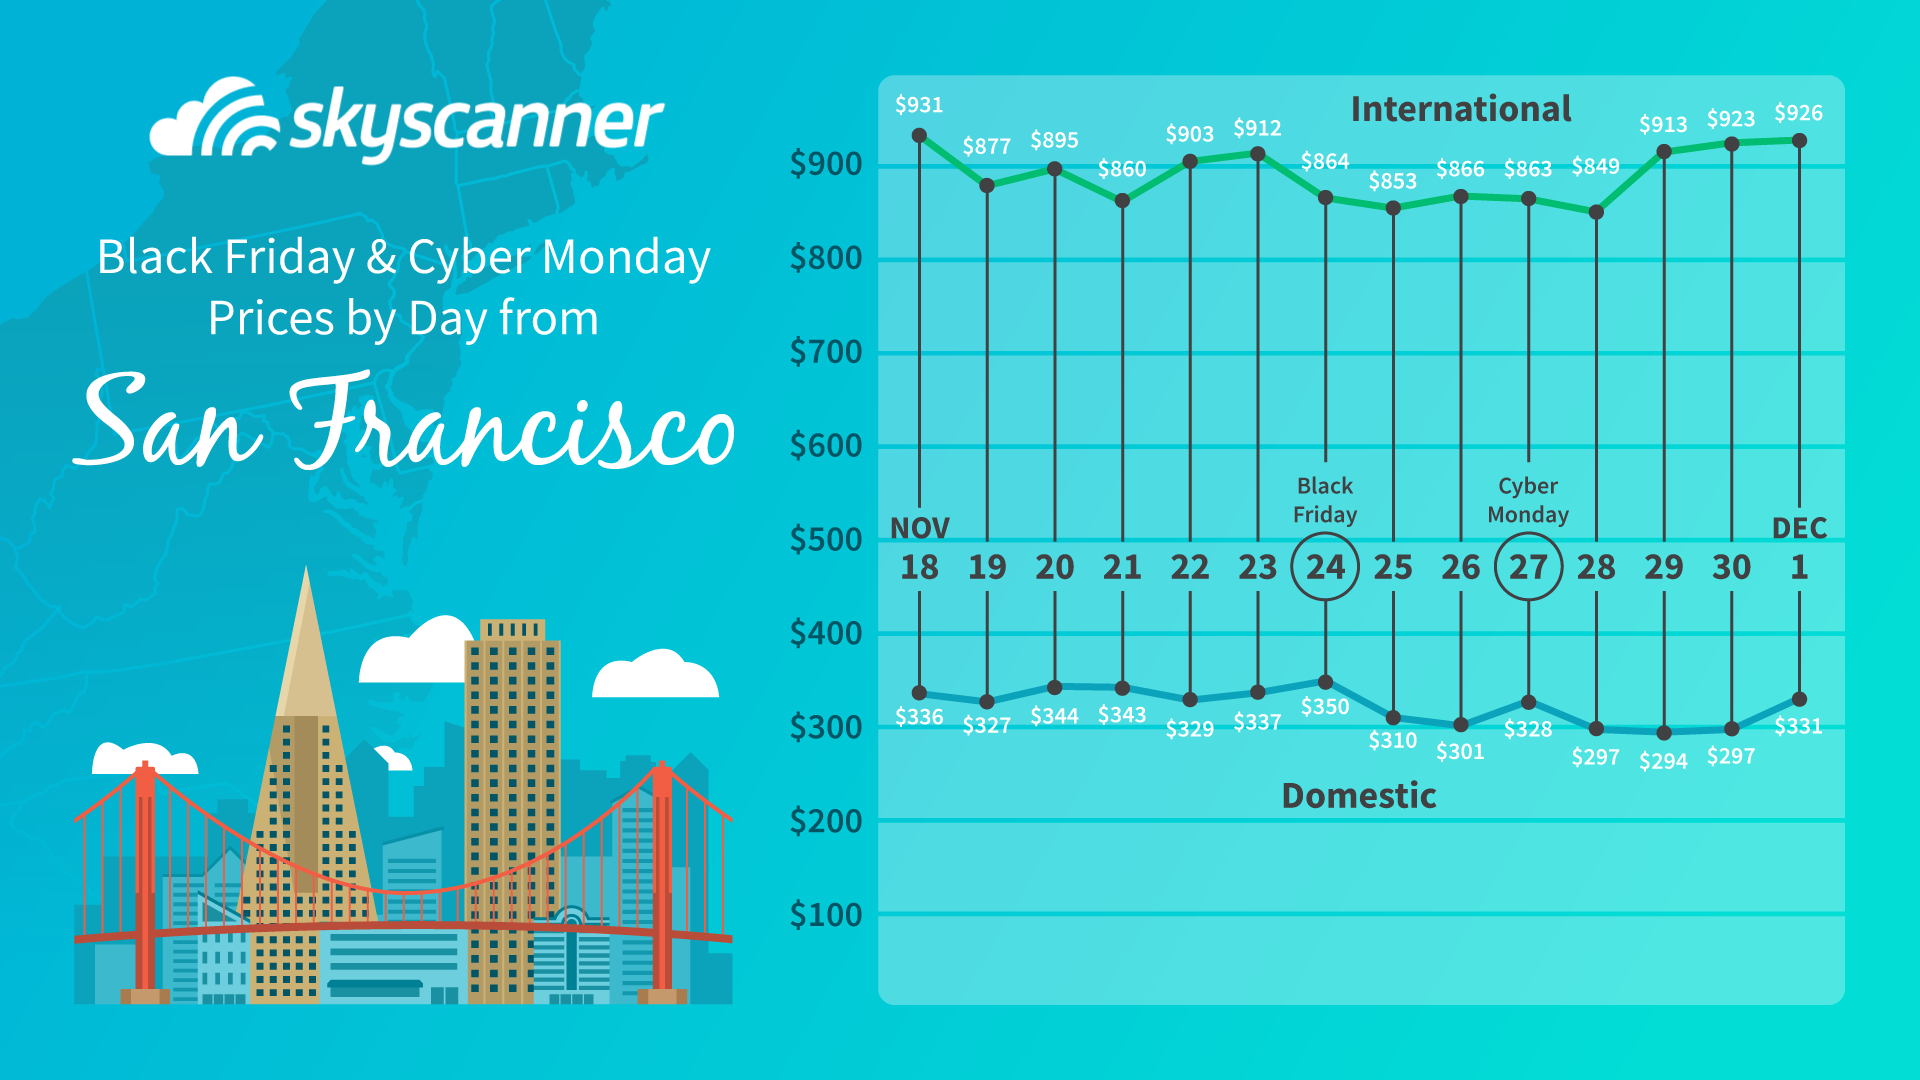 cheapest flights from san francisco during black friday and cyber monday